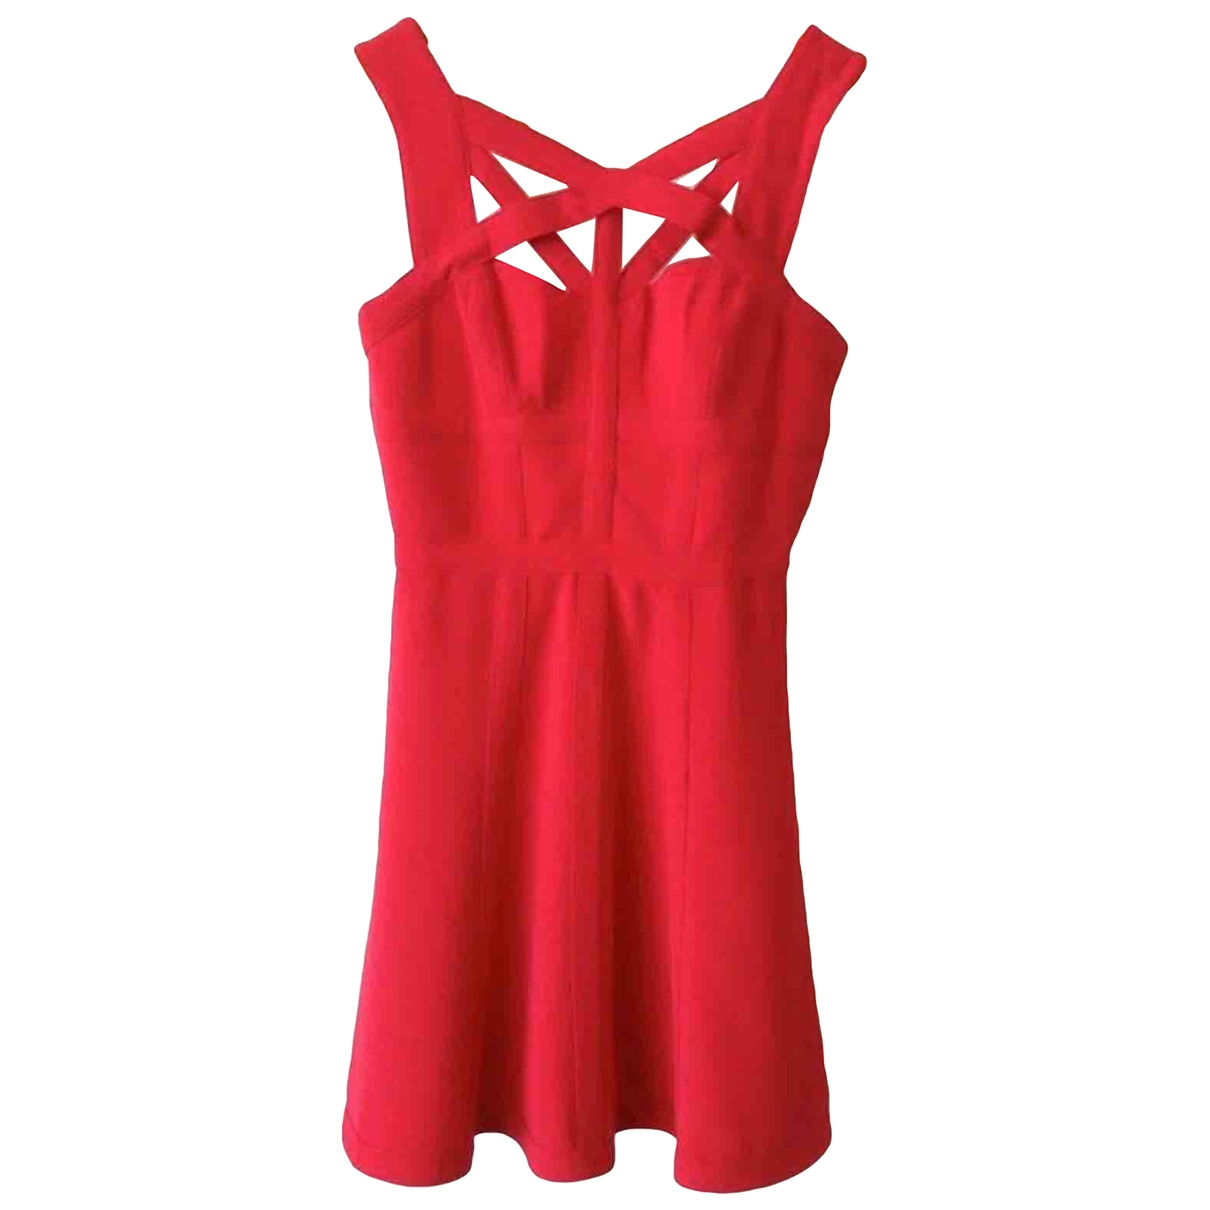 Bcbg Max Azria \N Kleid in  Rot Polyester